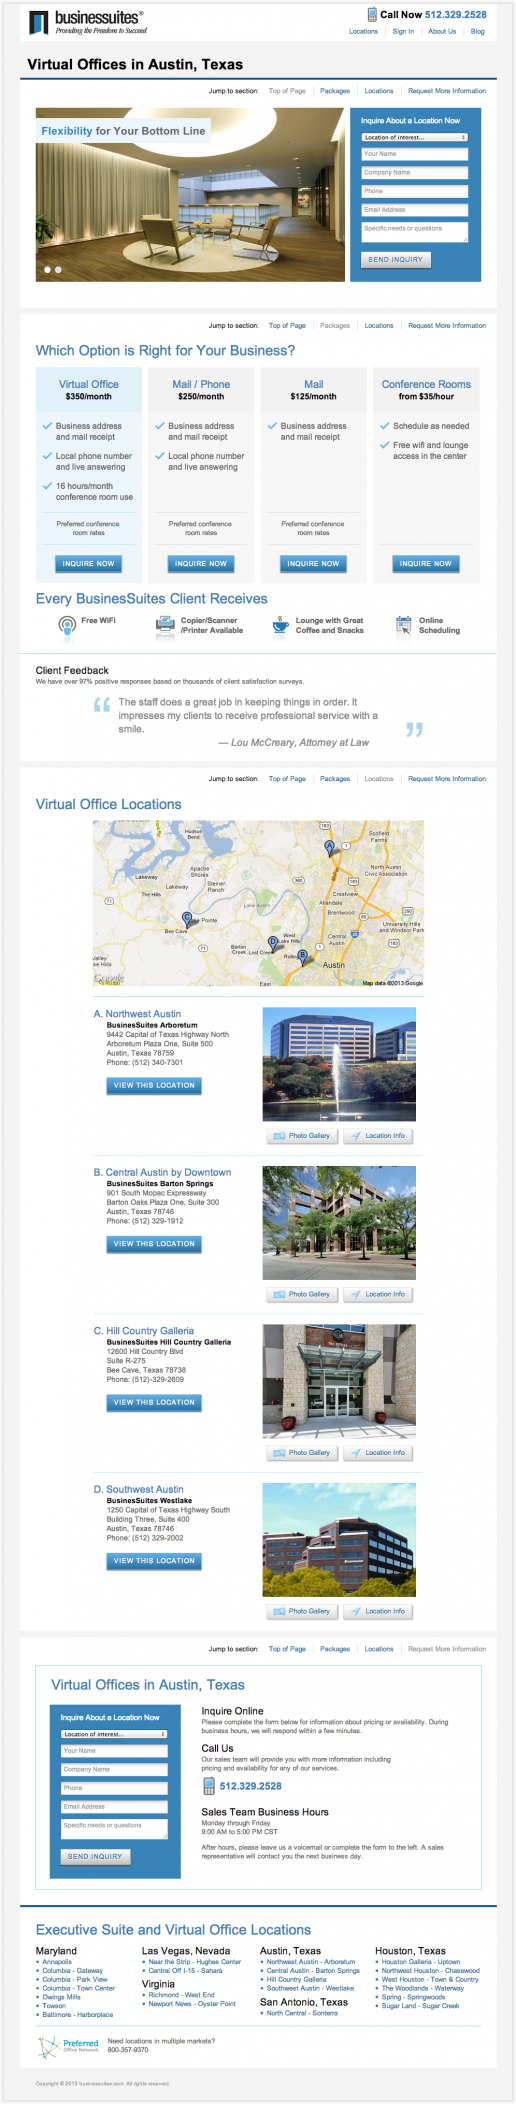 BusinesSuites Virtual Offices Page - version 1